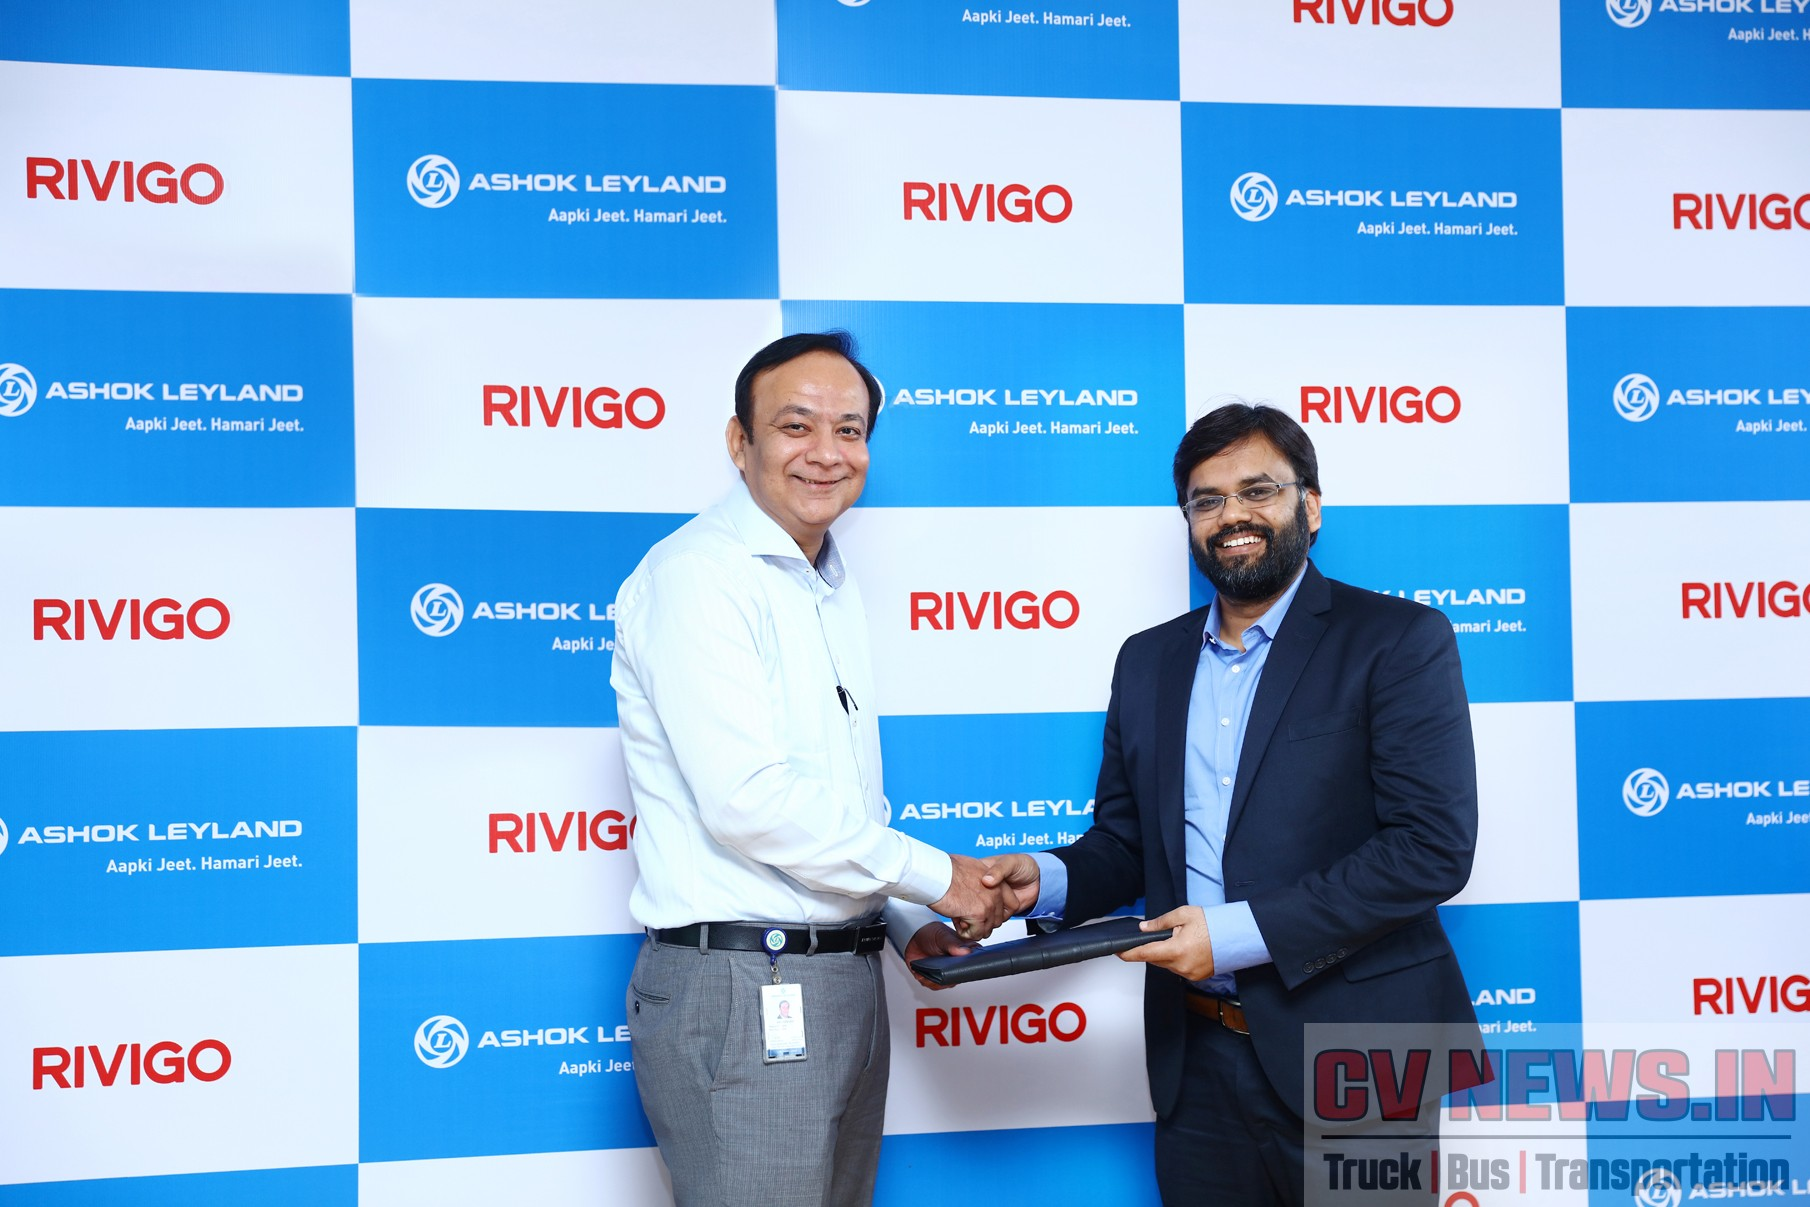 Image - (L-R) Mr. Anuj Kathuria, President - Global Trucks, Ashok Leyland and Mr. Deepak Garg, Founder and Chief Executive Officer, Rivigo,